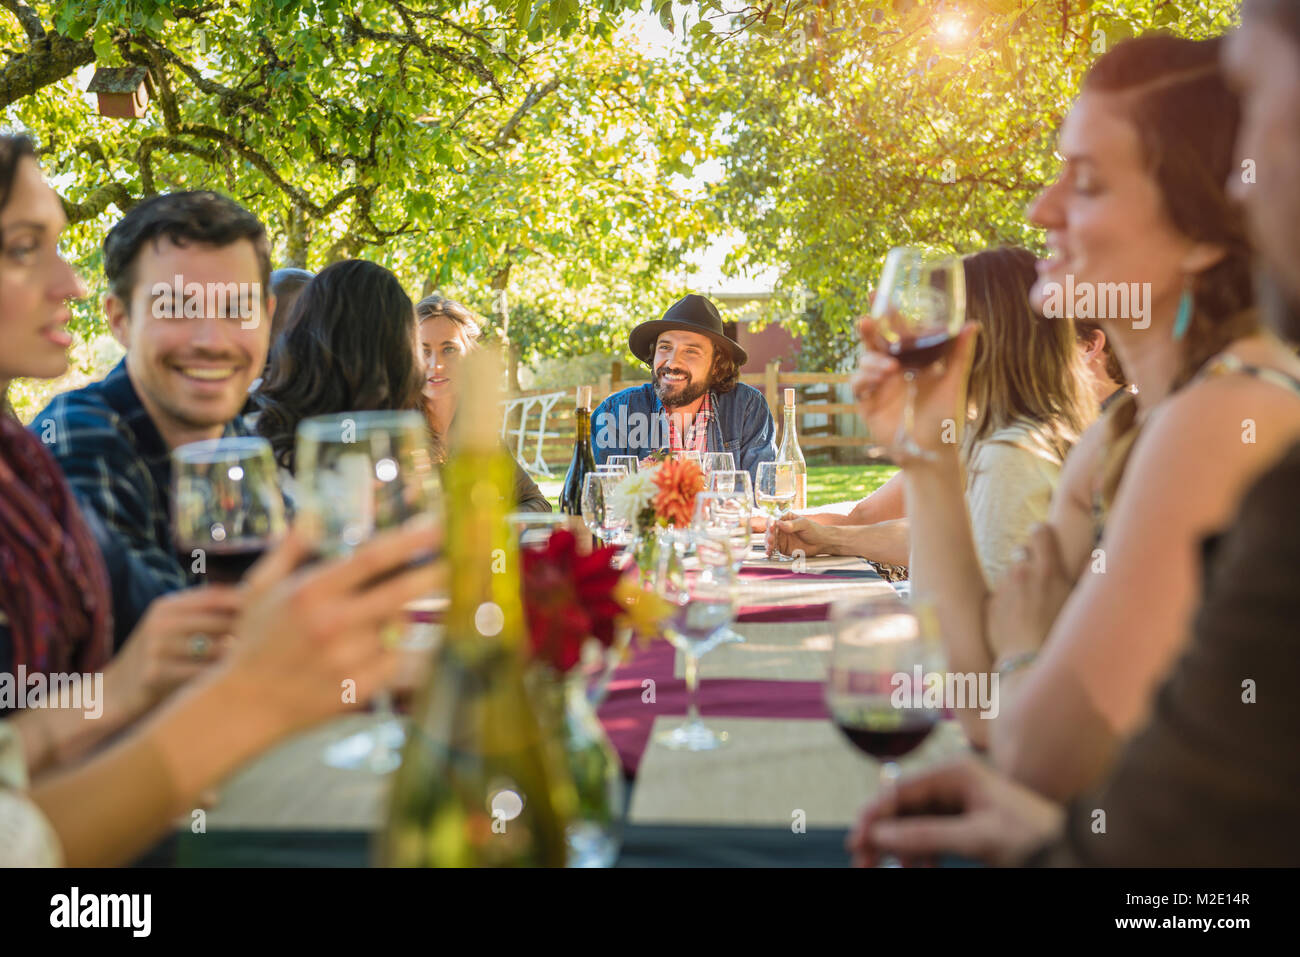 Les amis de boire du vin au party outdoors Photo Stock